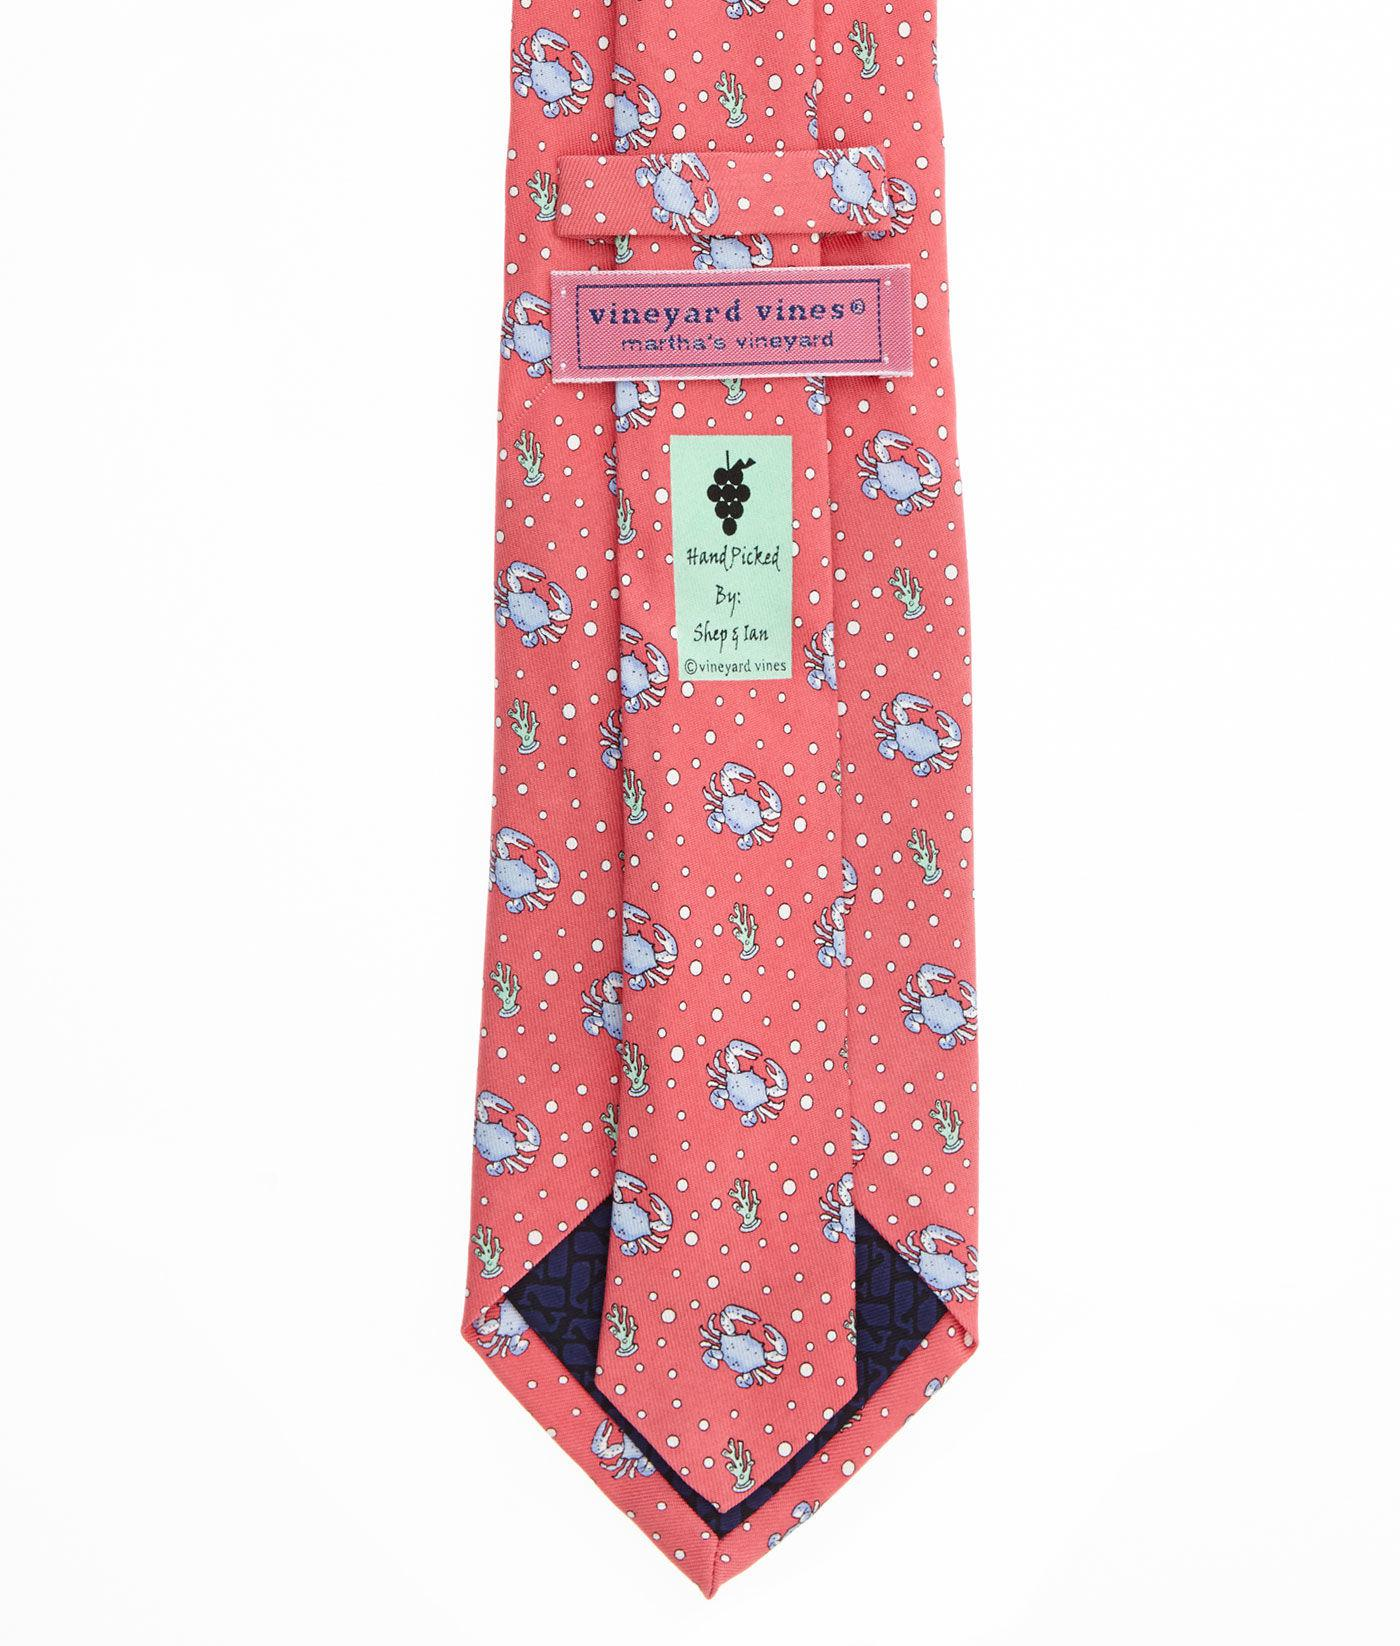 978ddfa1a70e Vineyard Vines - Red Crab Tie for Men - Lyst. View fullscreen